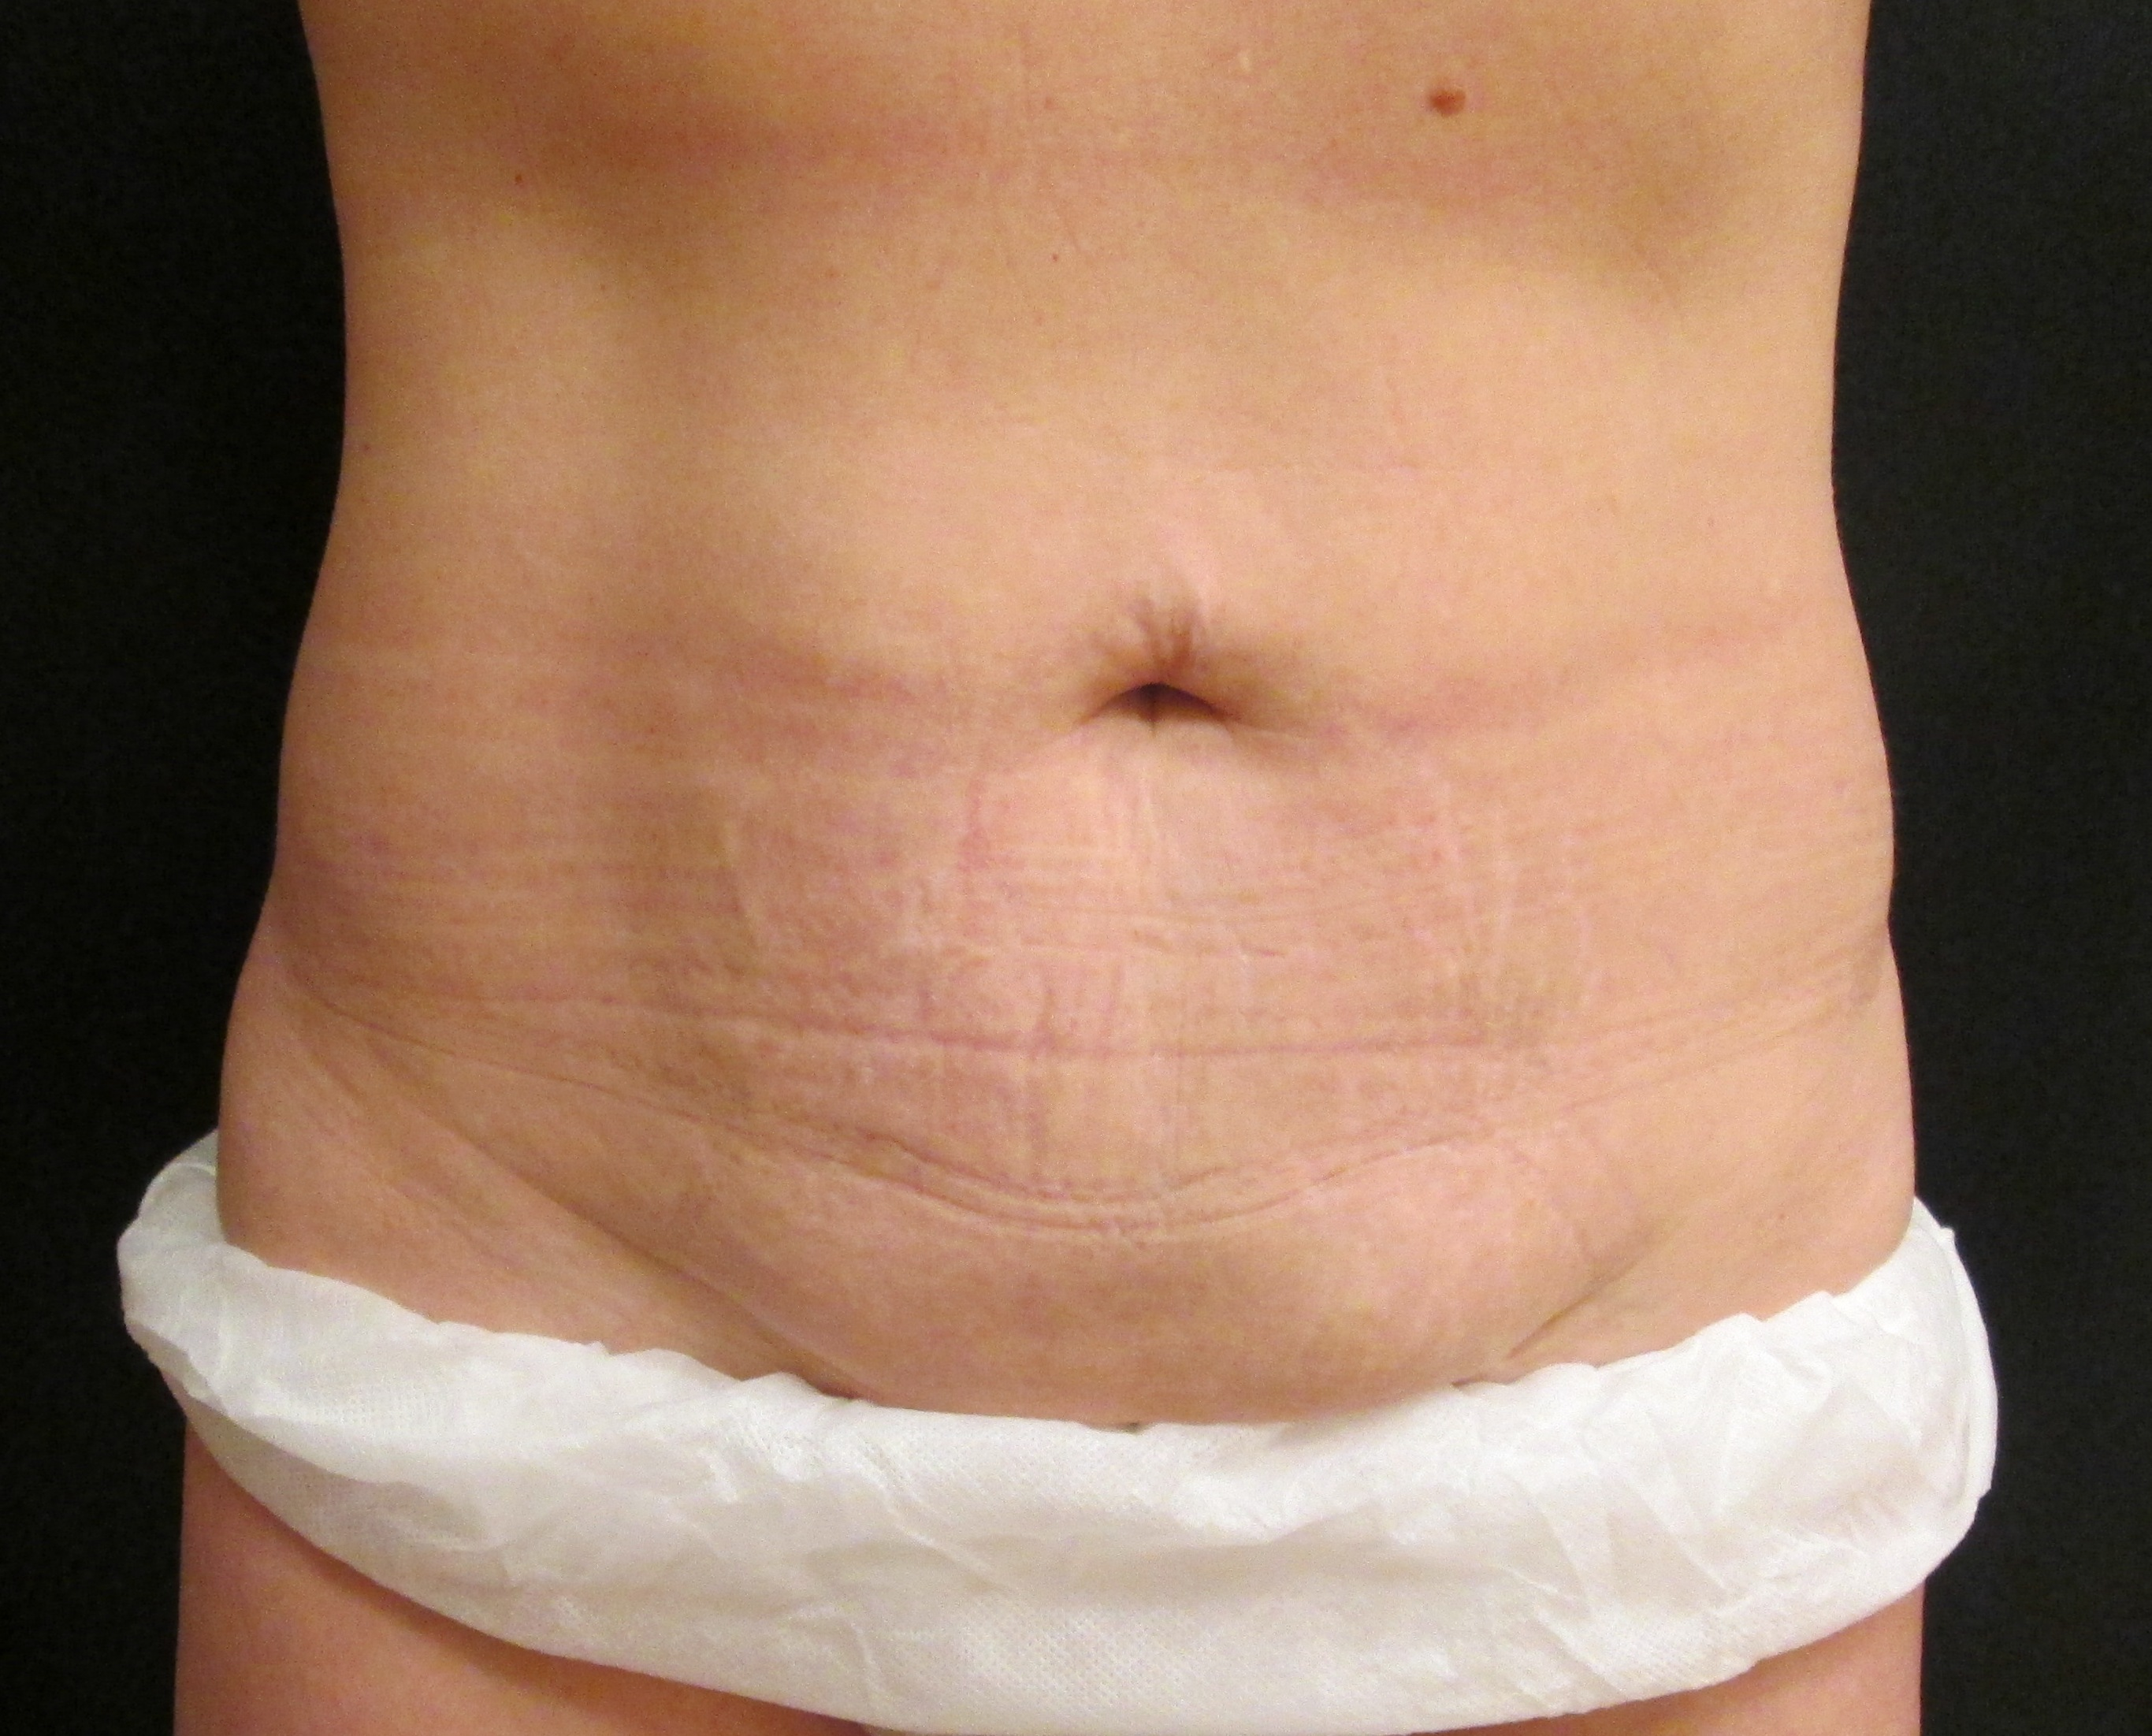 coolsculpting abdomen muffin top non-surgical fat reduction jandali plastic surgery connecticut